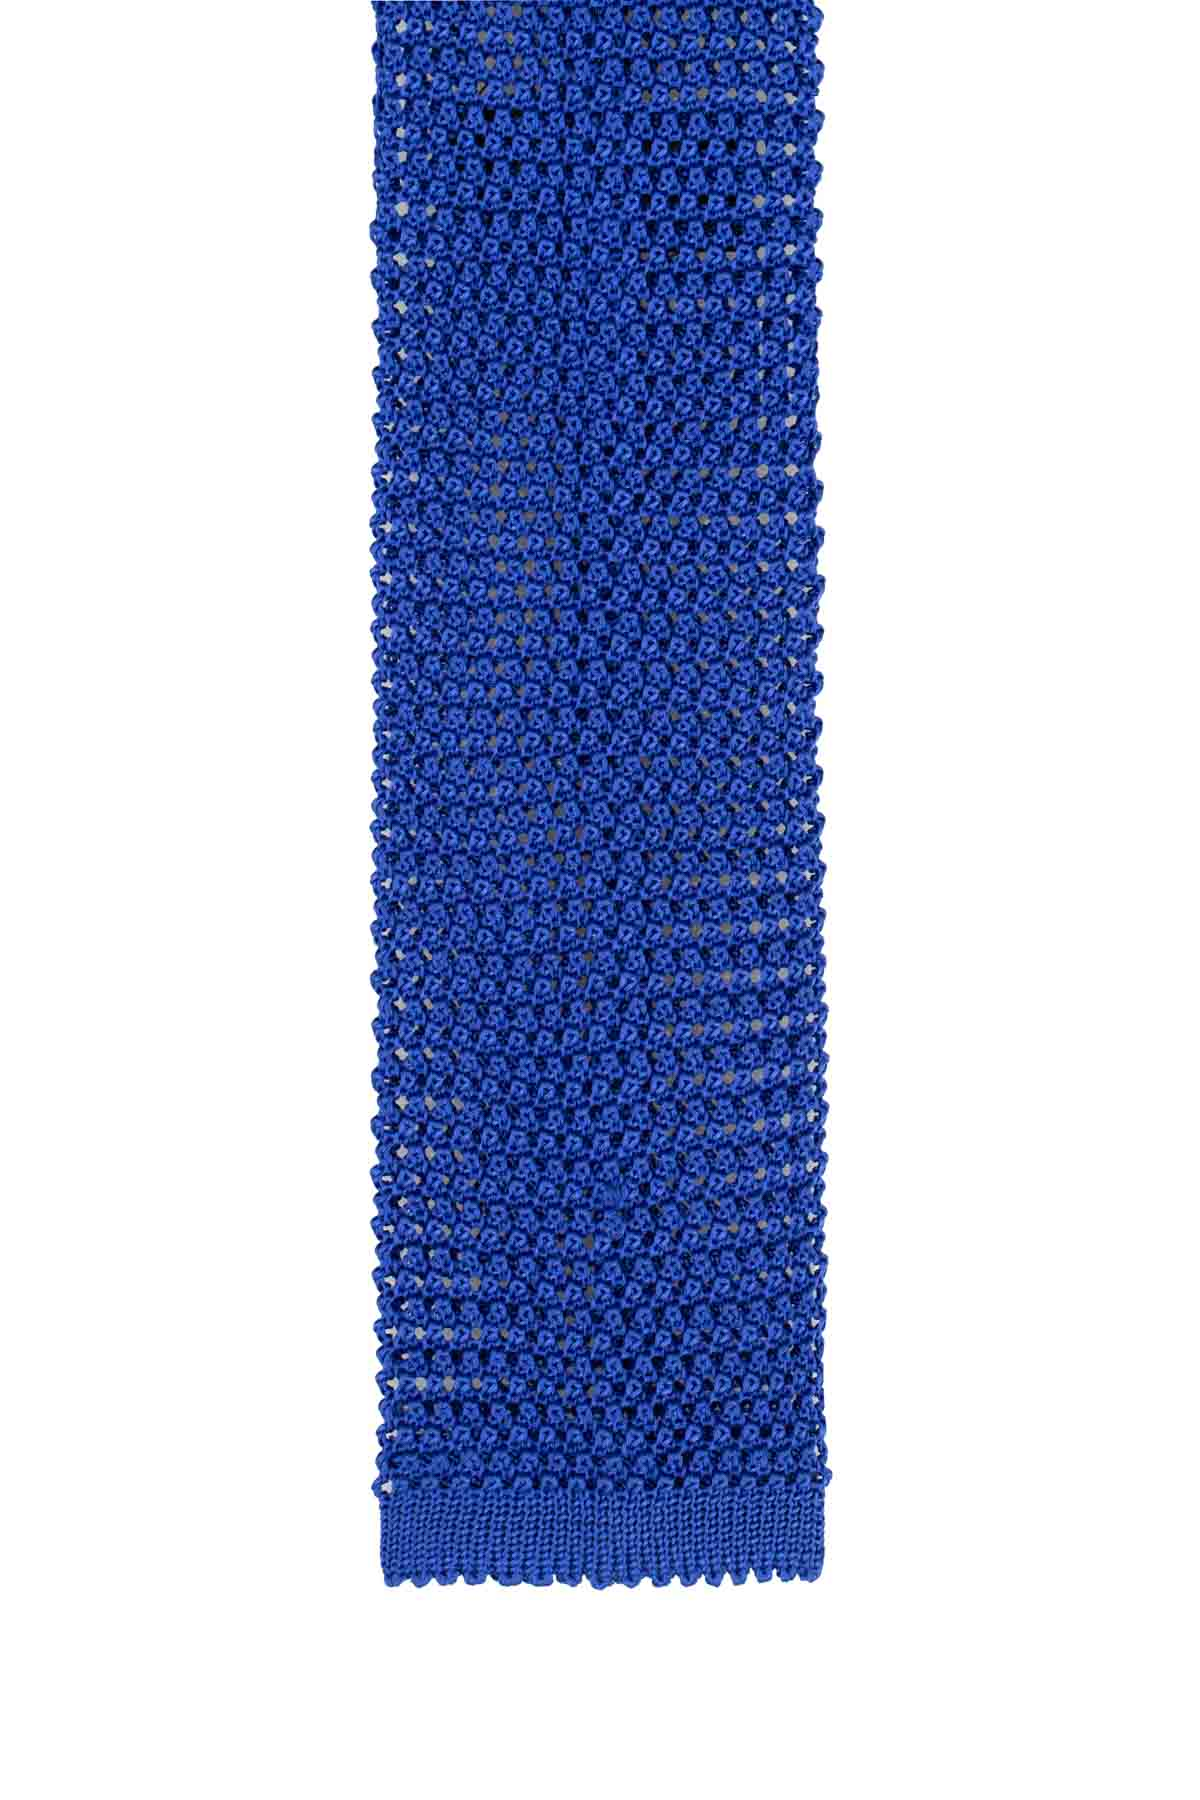 Italian Knitted Tie - Bright Blue